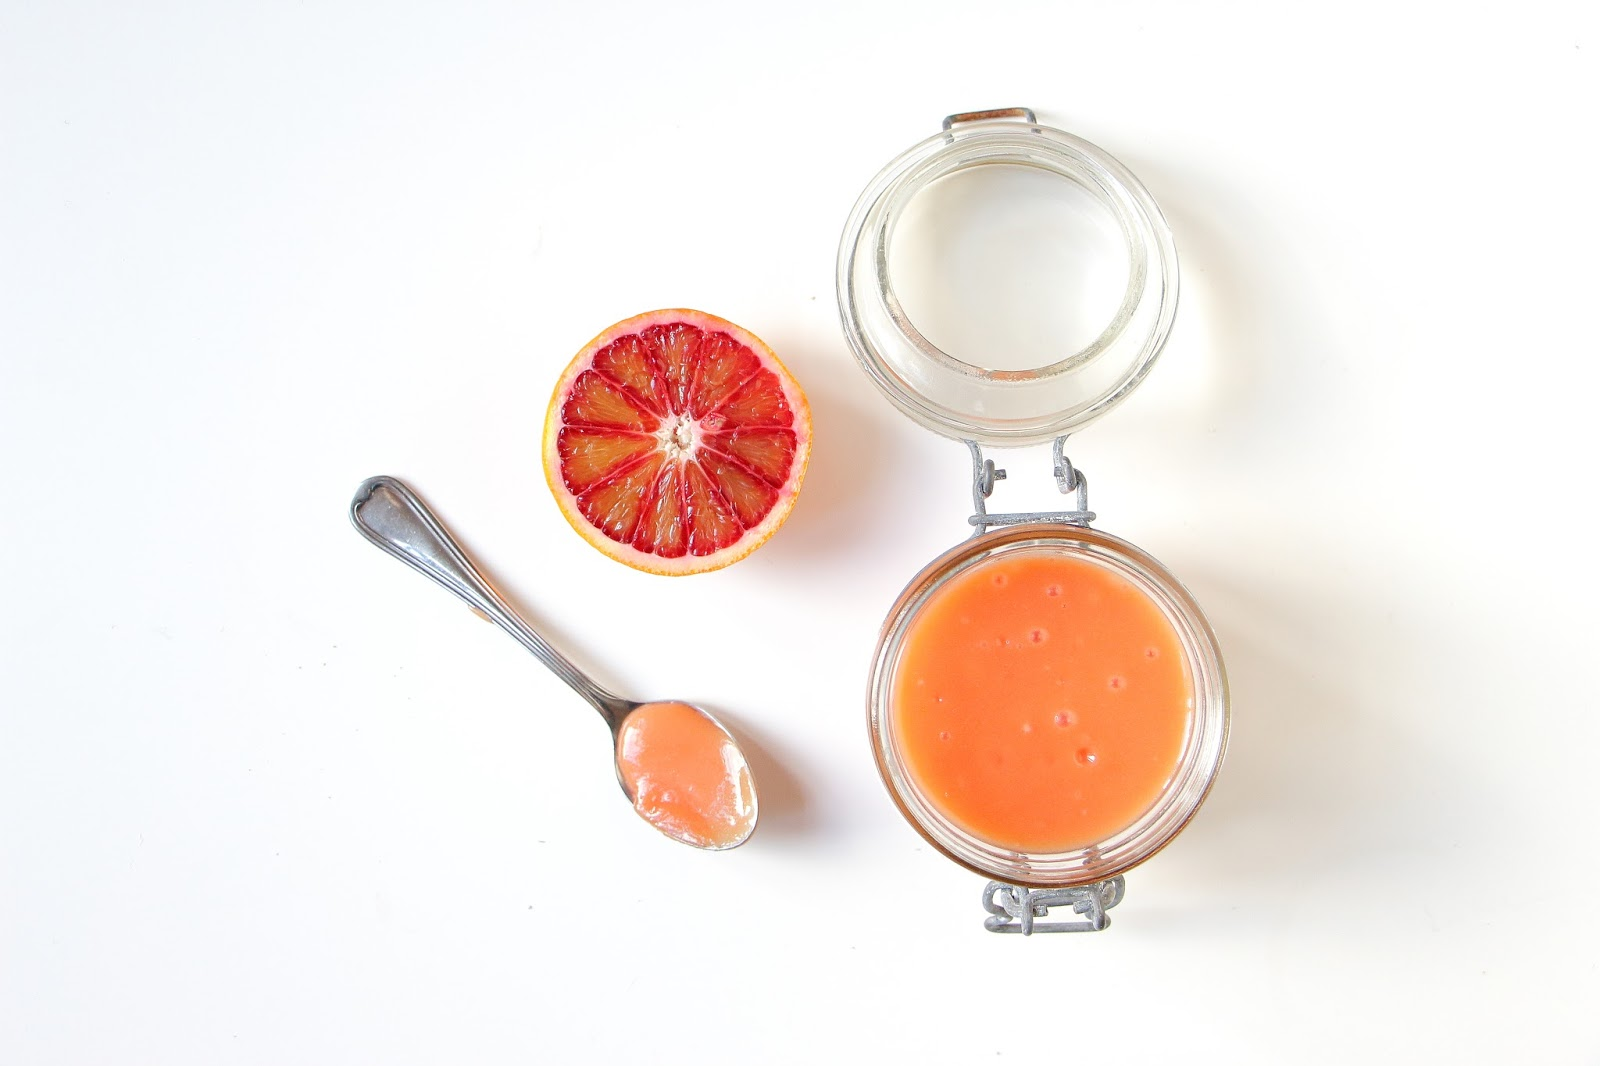 Recette Curd d'orange sanguine